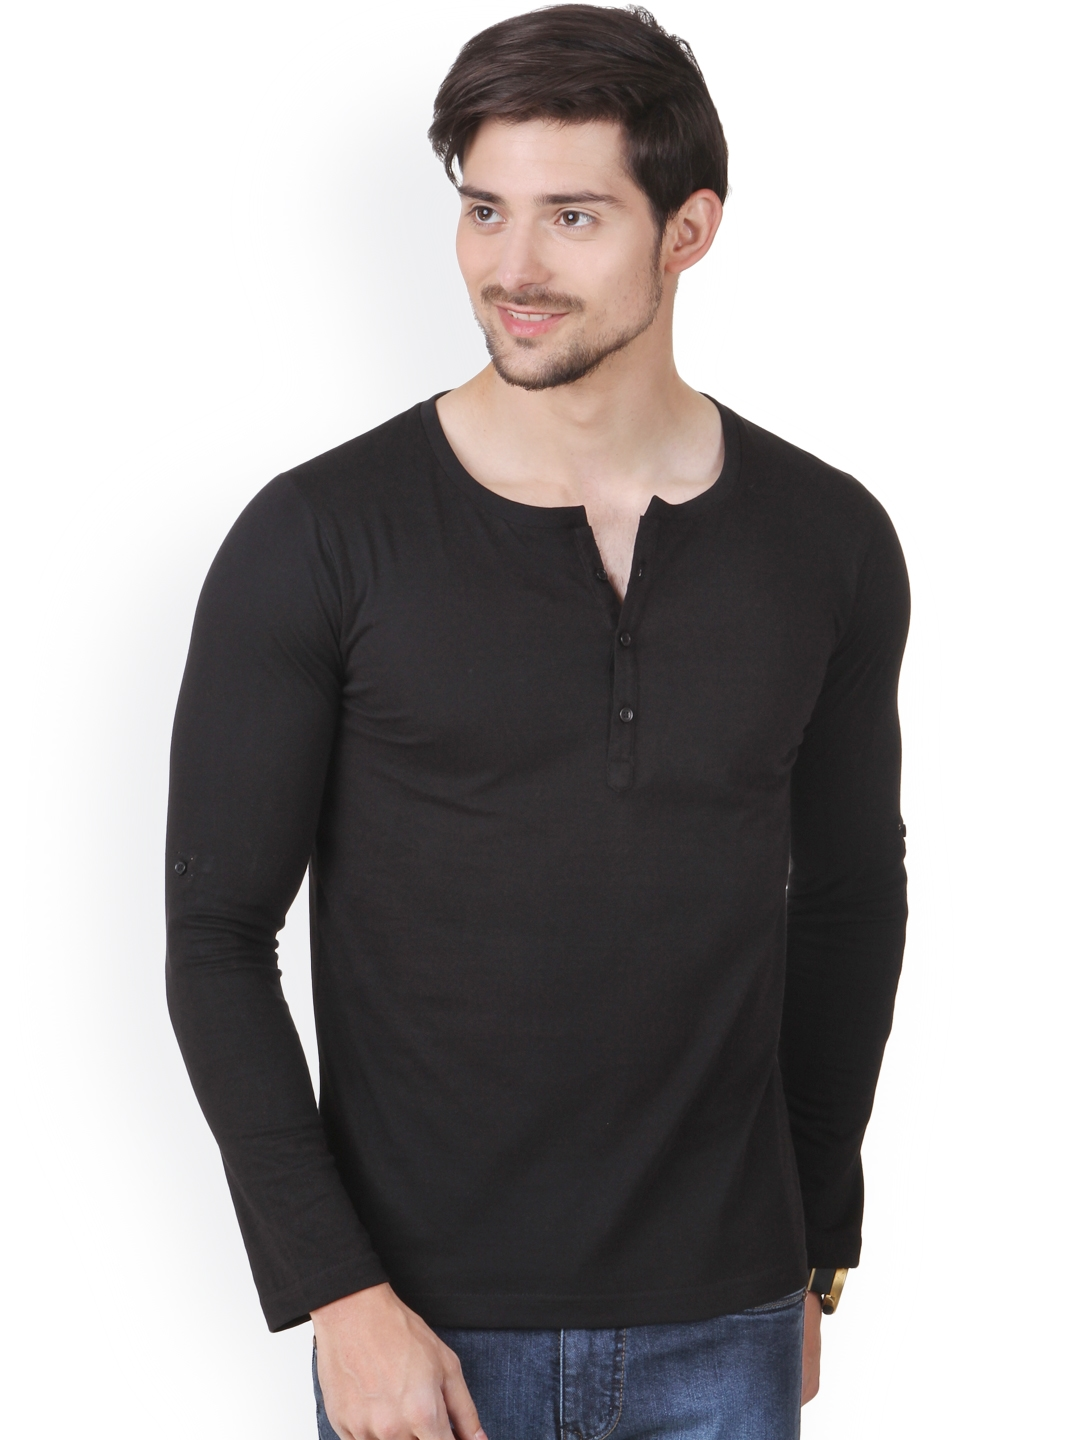 Black t shirt rolled up sleeves - Rs 799